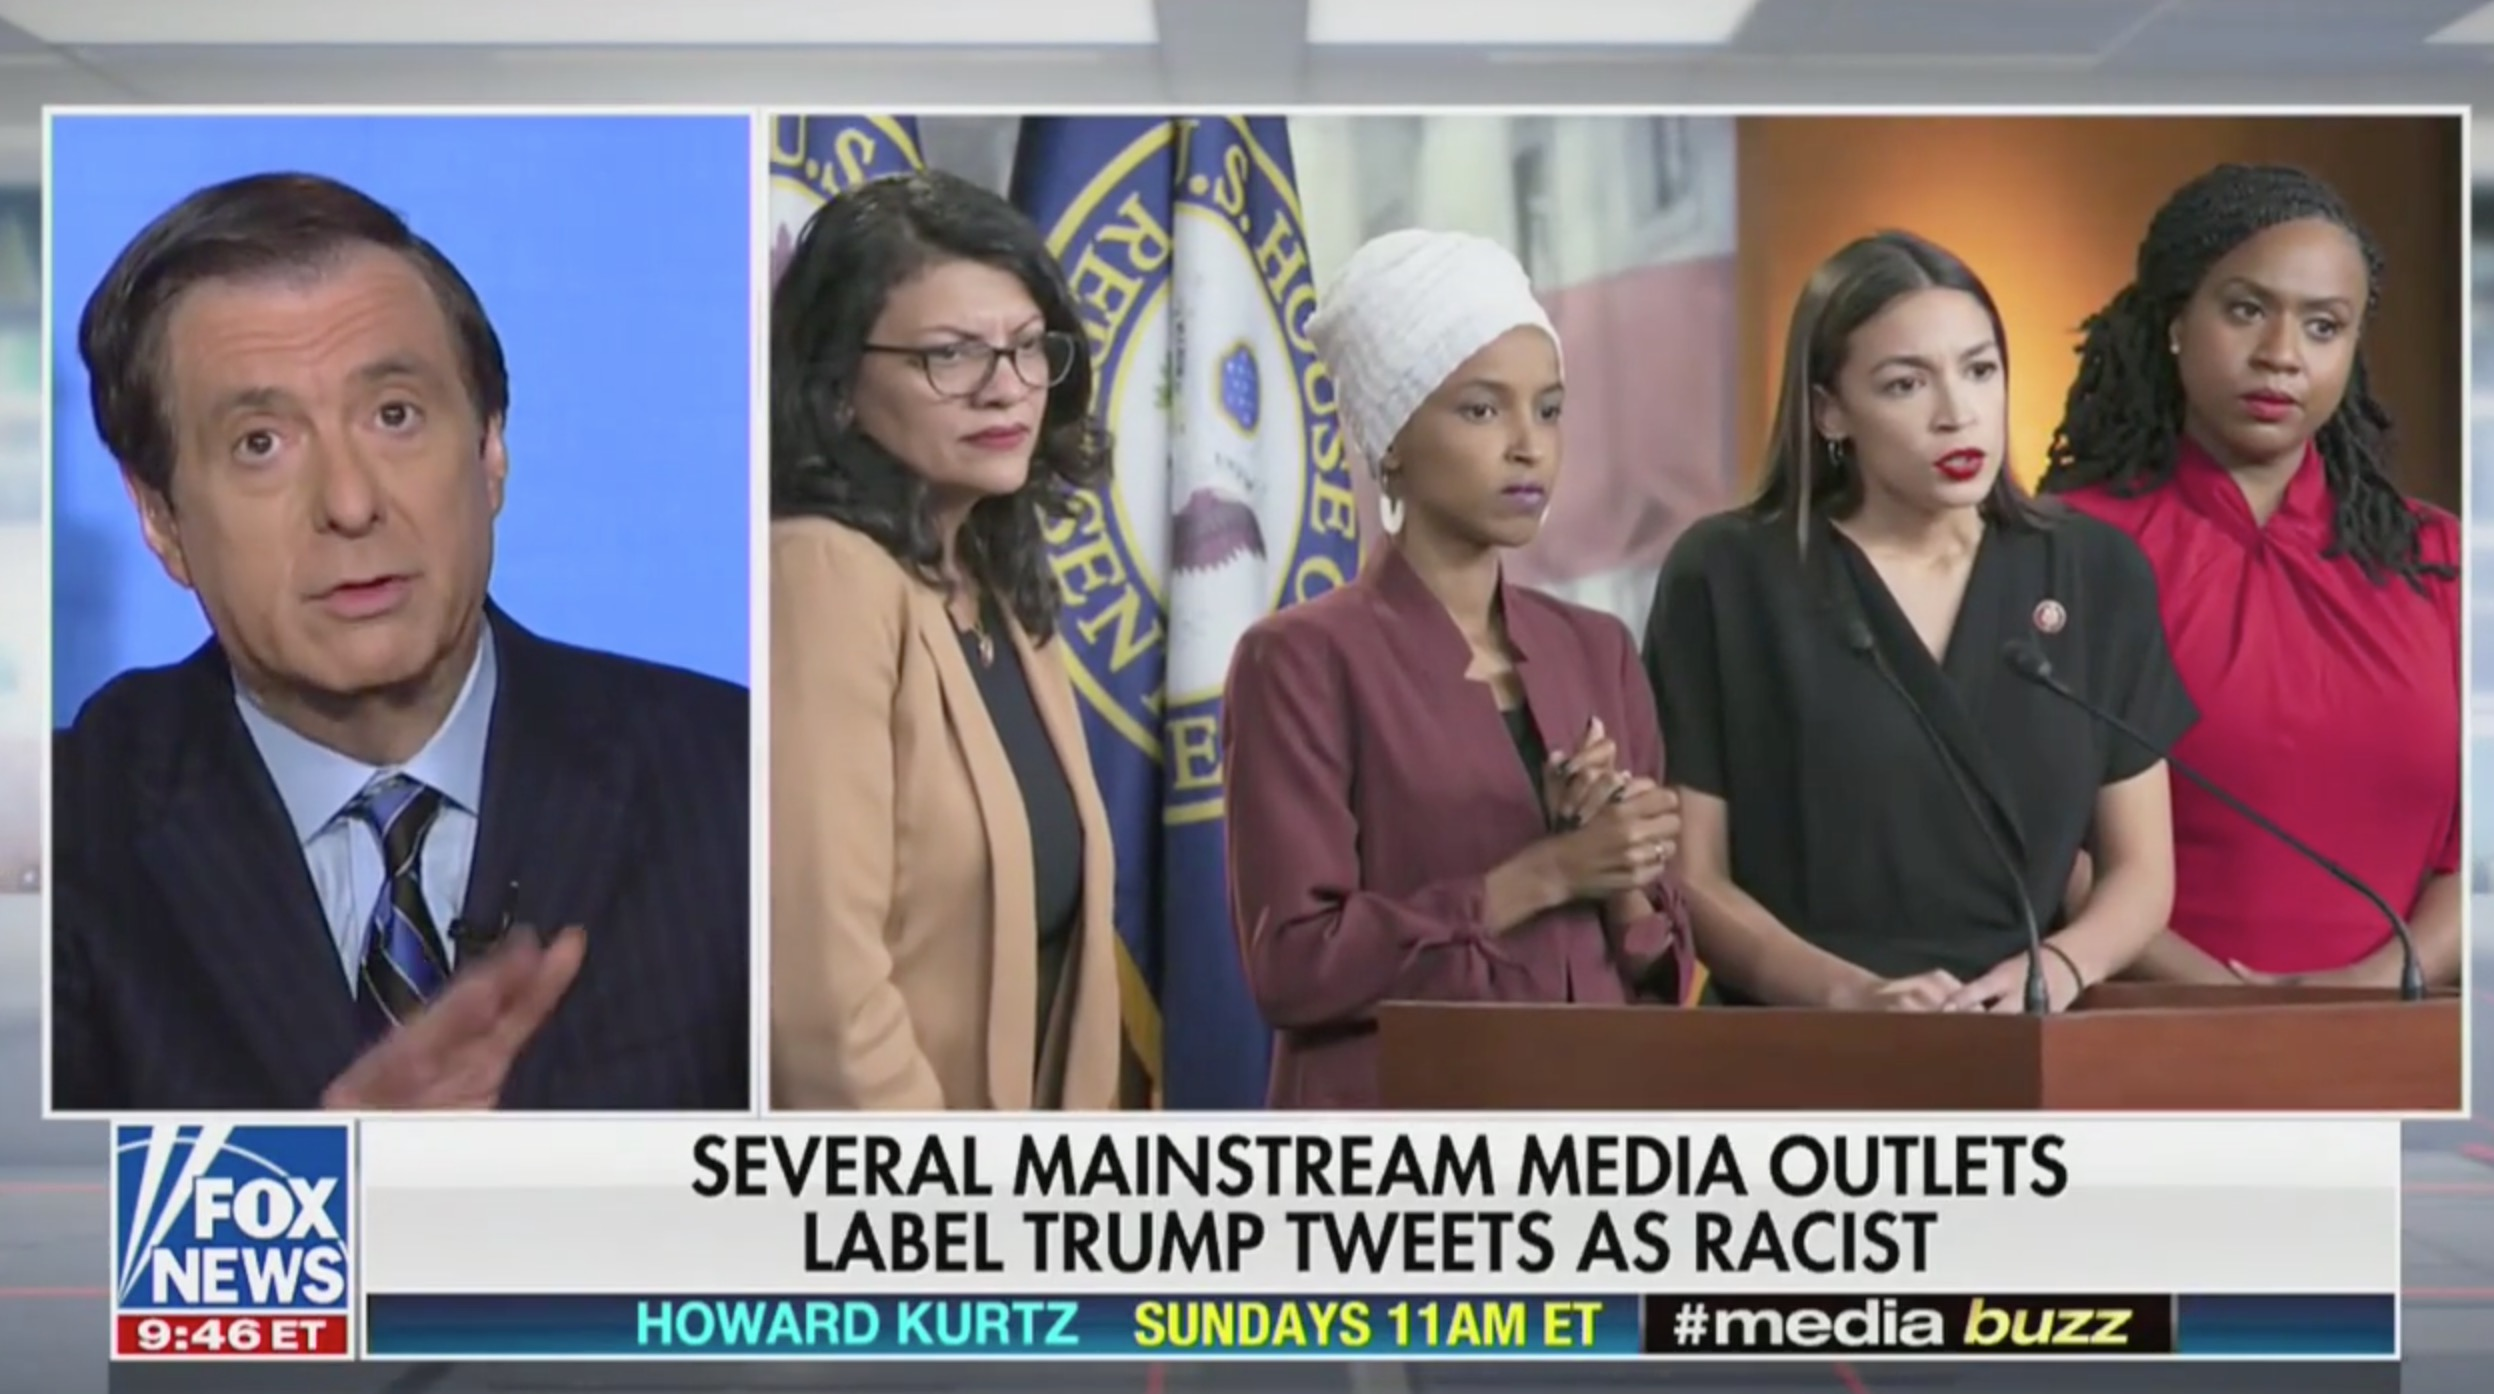 Fox's Howard Kurtz Criticizes Media For Labeling Trump's Tweets Racist: News Orgs 'Need to Be More Cautious'